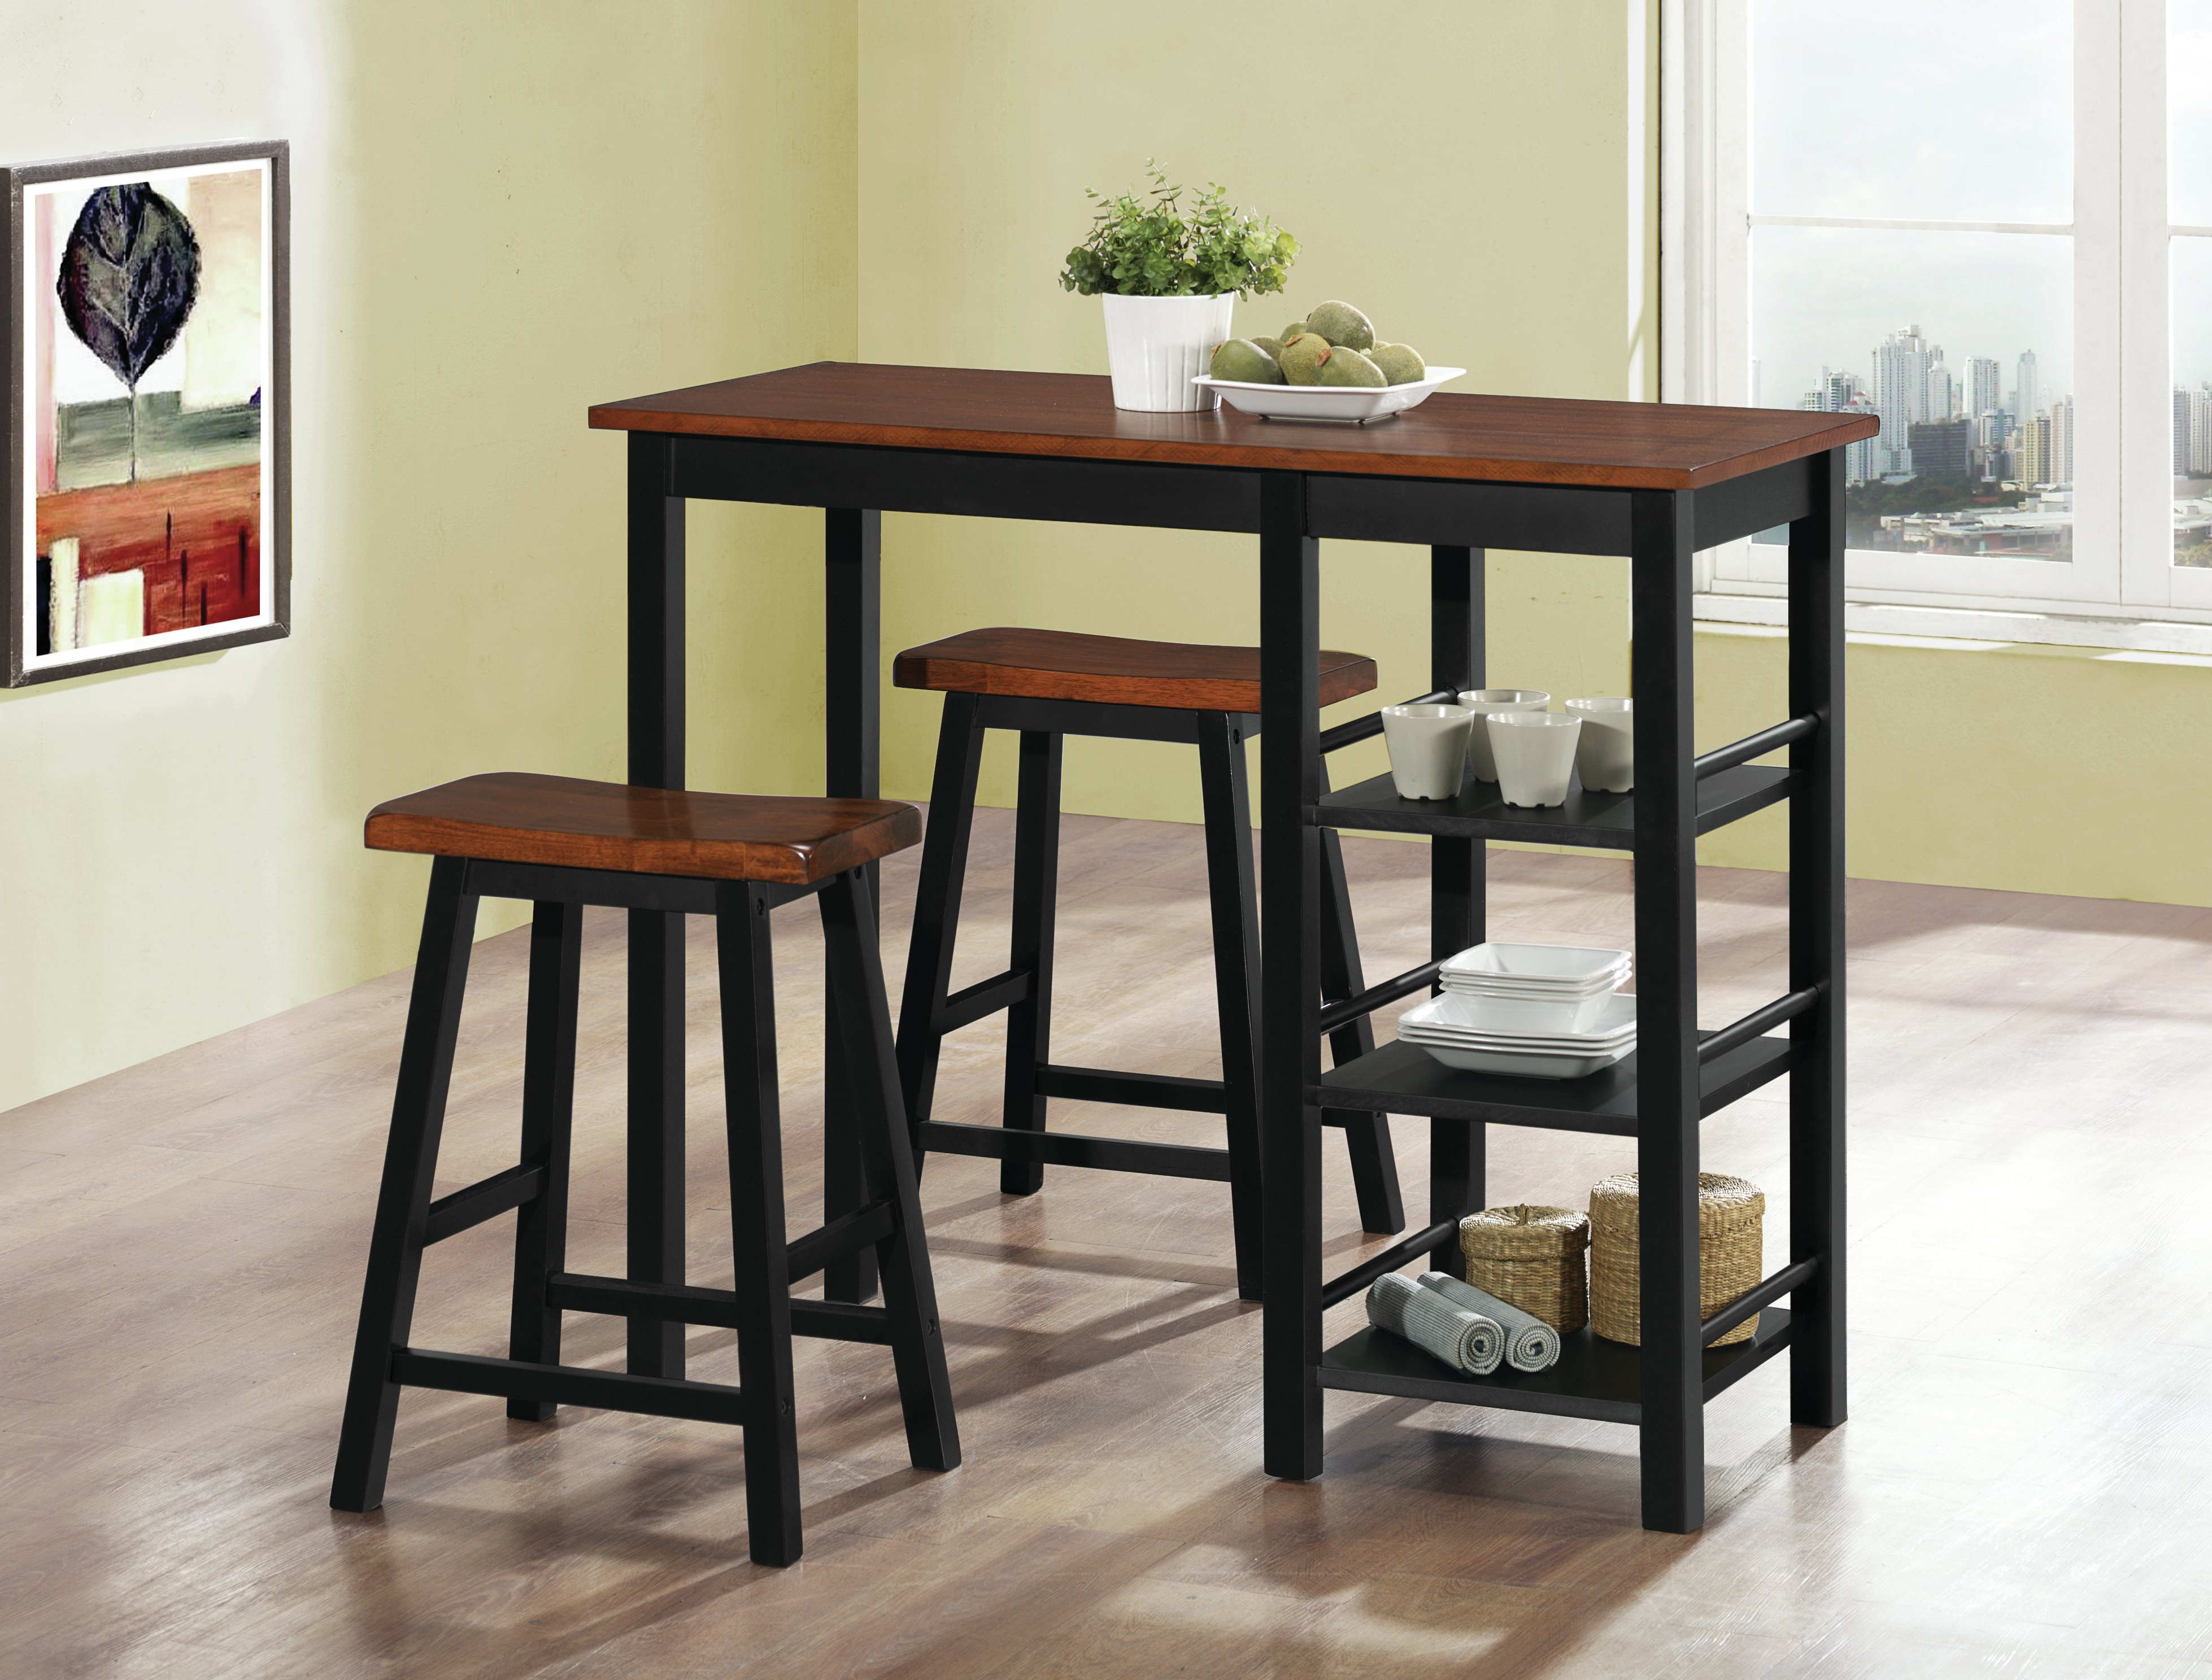 Berrios 3 Piece Counter Height Dining Set Throughout Most Recent Weatherholt Dining Tables (View 4 of 20)